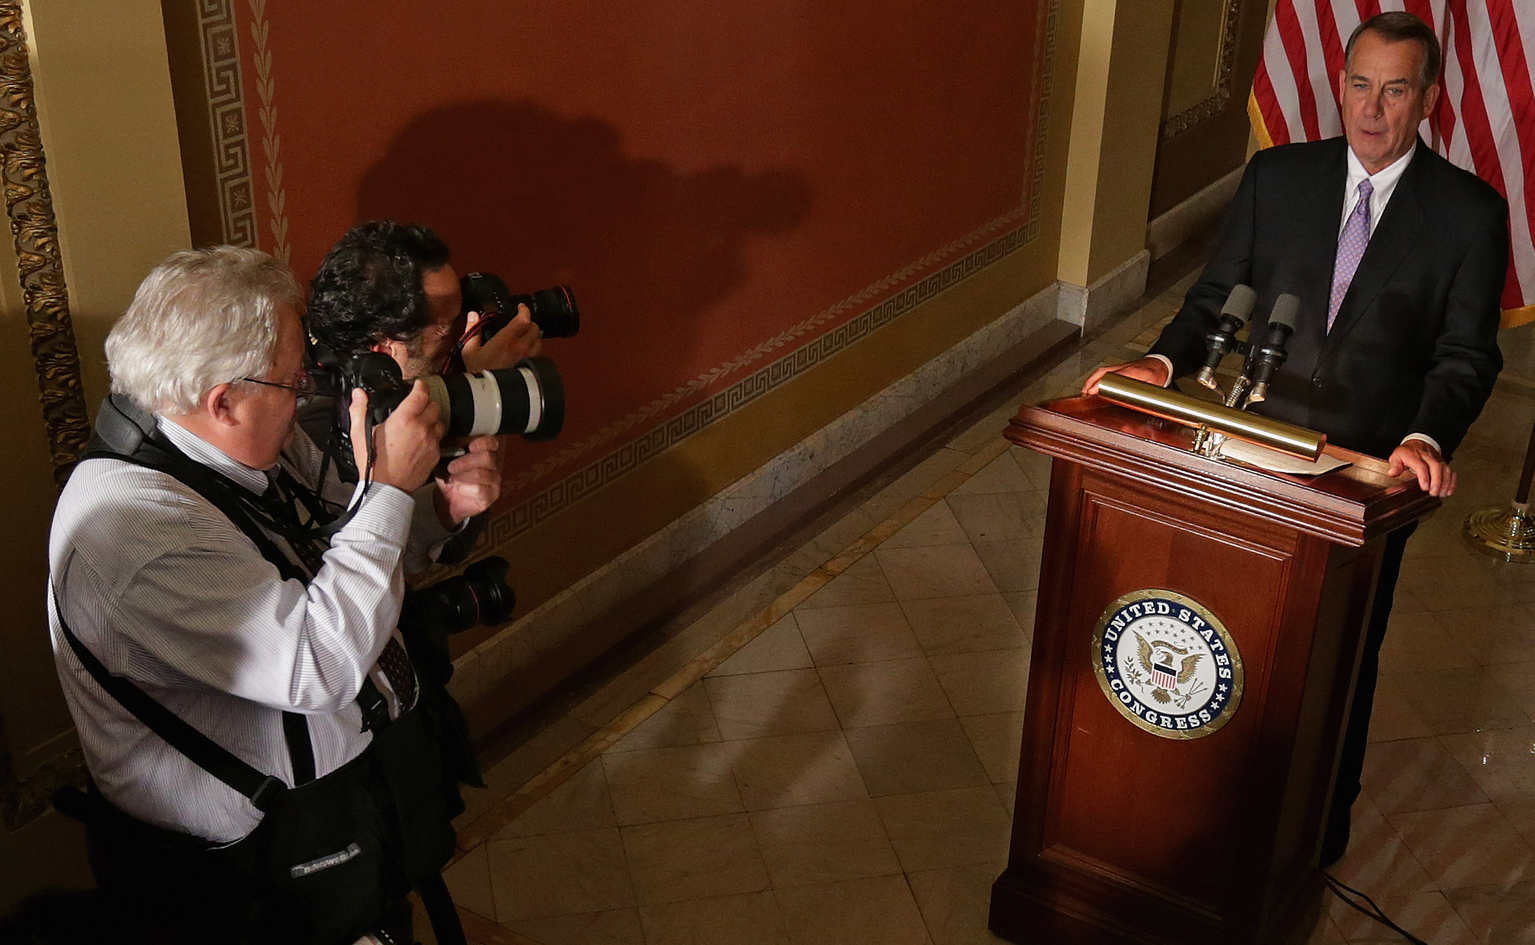 Speaker of the House John Boehner talks with reporters after President Barack Obama announced he would stop deportations of some undocumented immigrants. (Getty Images)